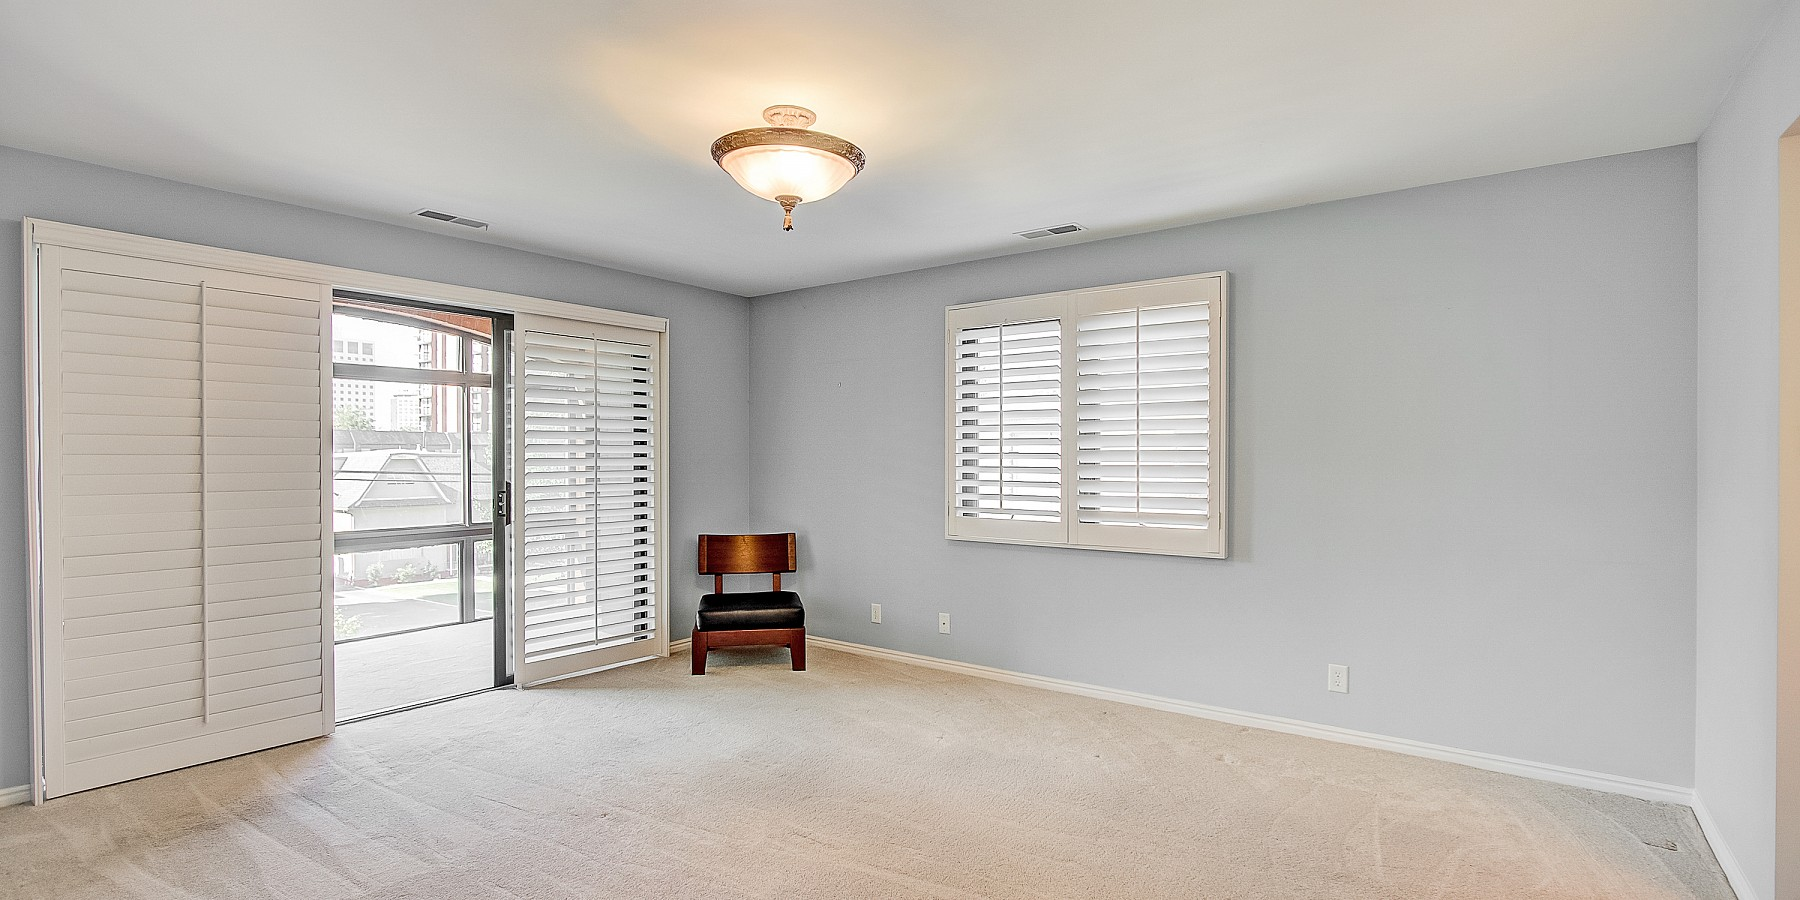 171 E. Third Avenue #202, Salt Lake City, UT 84103